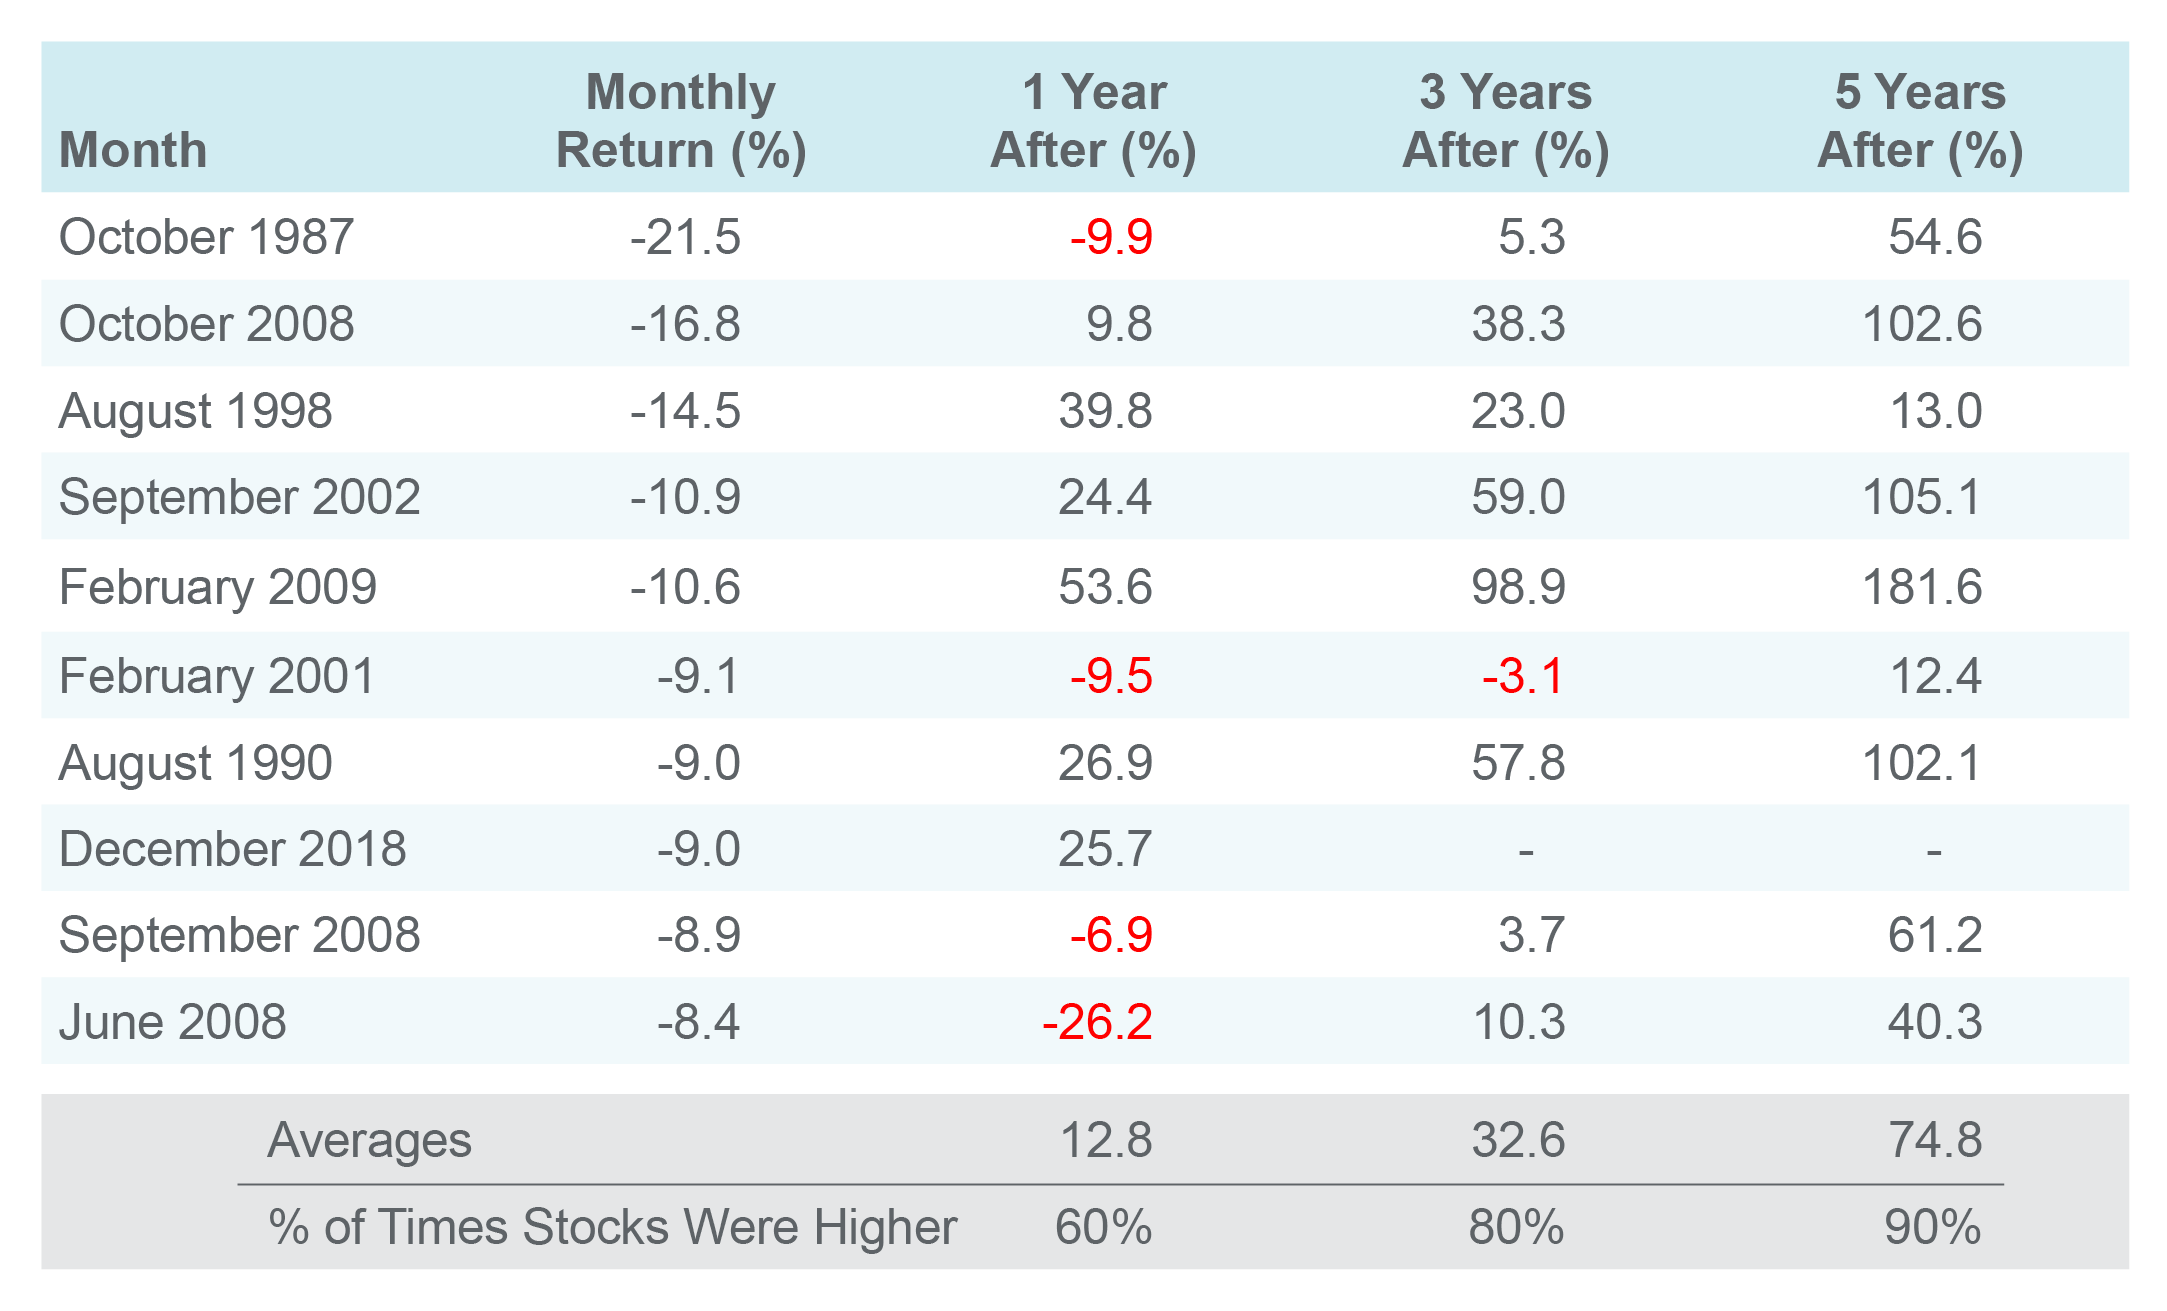 A chart showing the returns of the US stock market after the 10 worst months